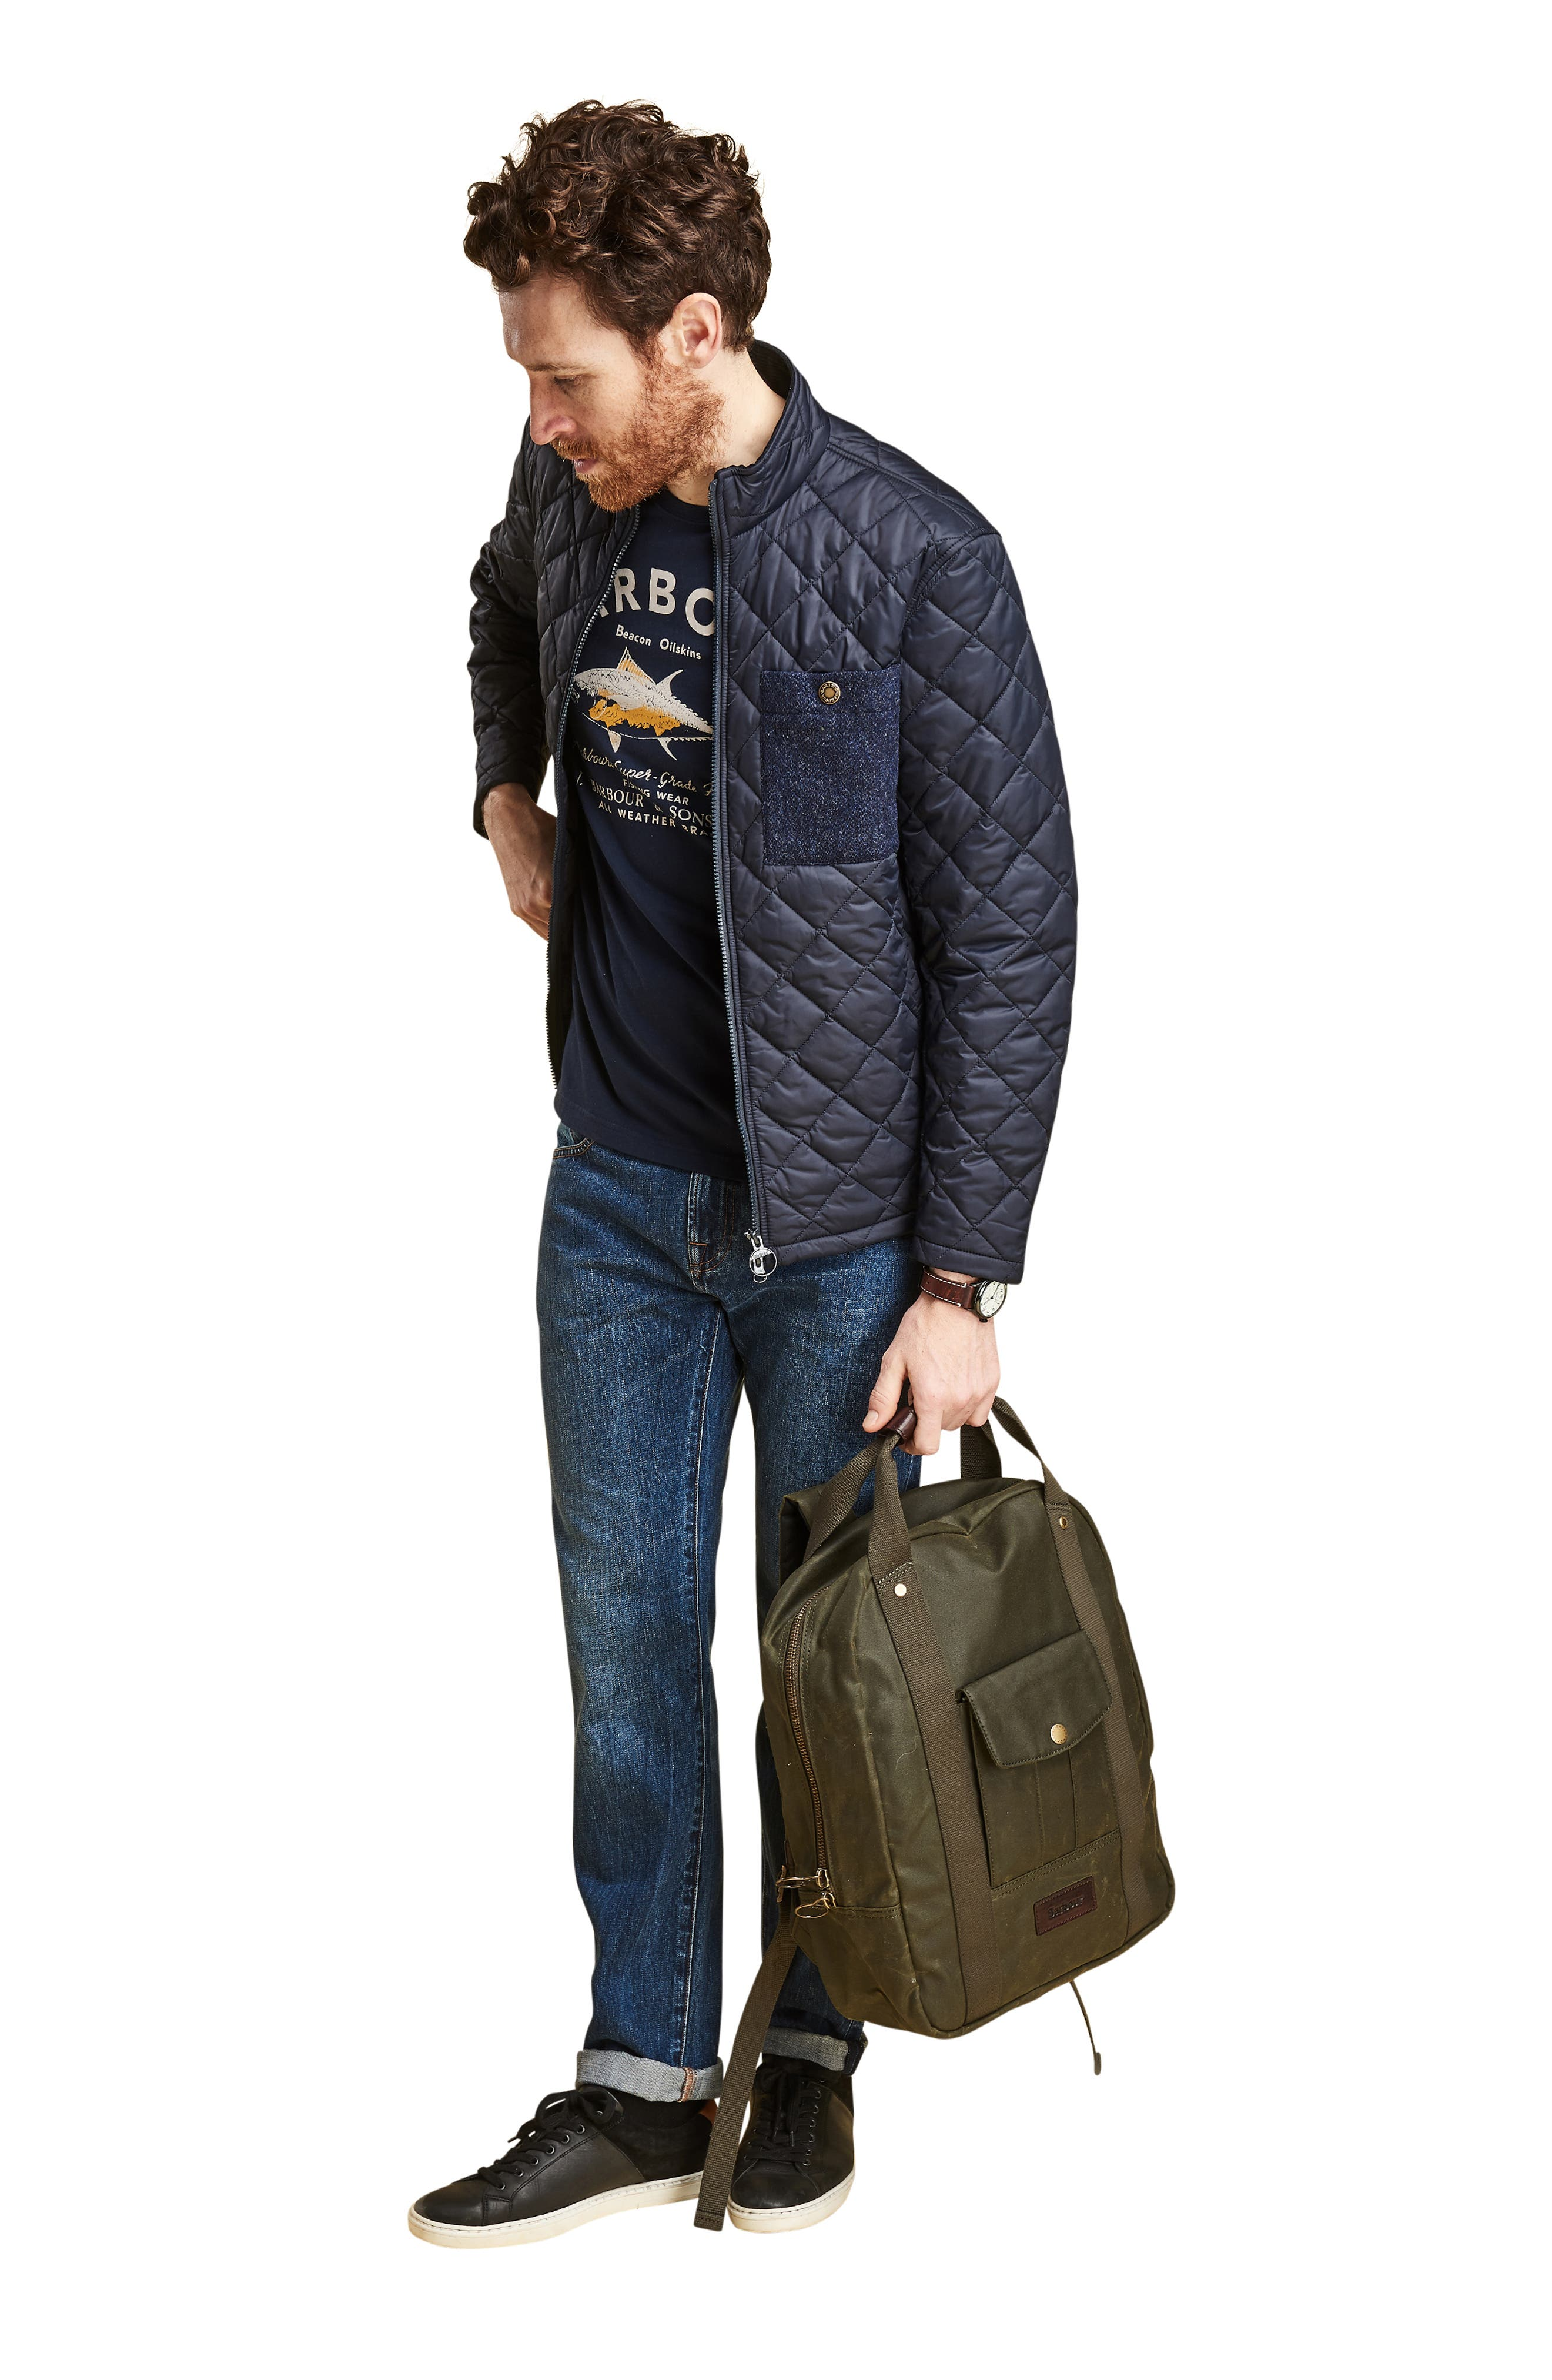 BARBOUR, Barbout Abaft Quilted Jacket, Alternate thumbnail 8, color, NAVY